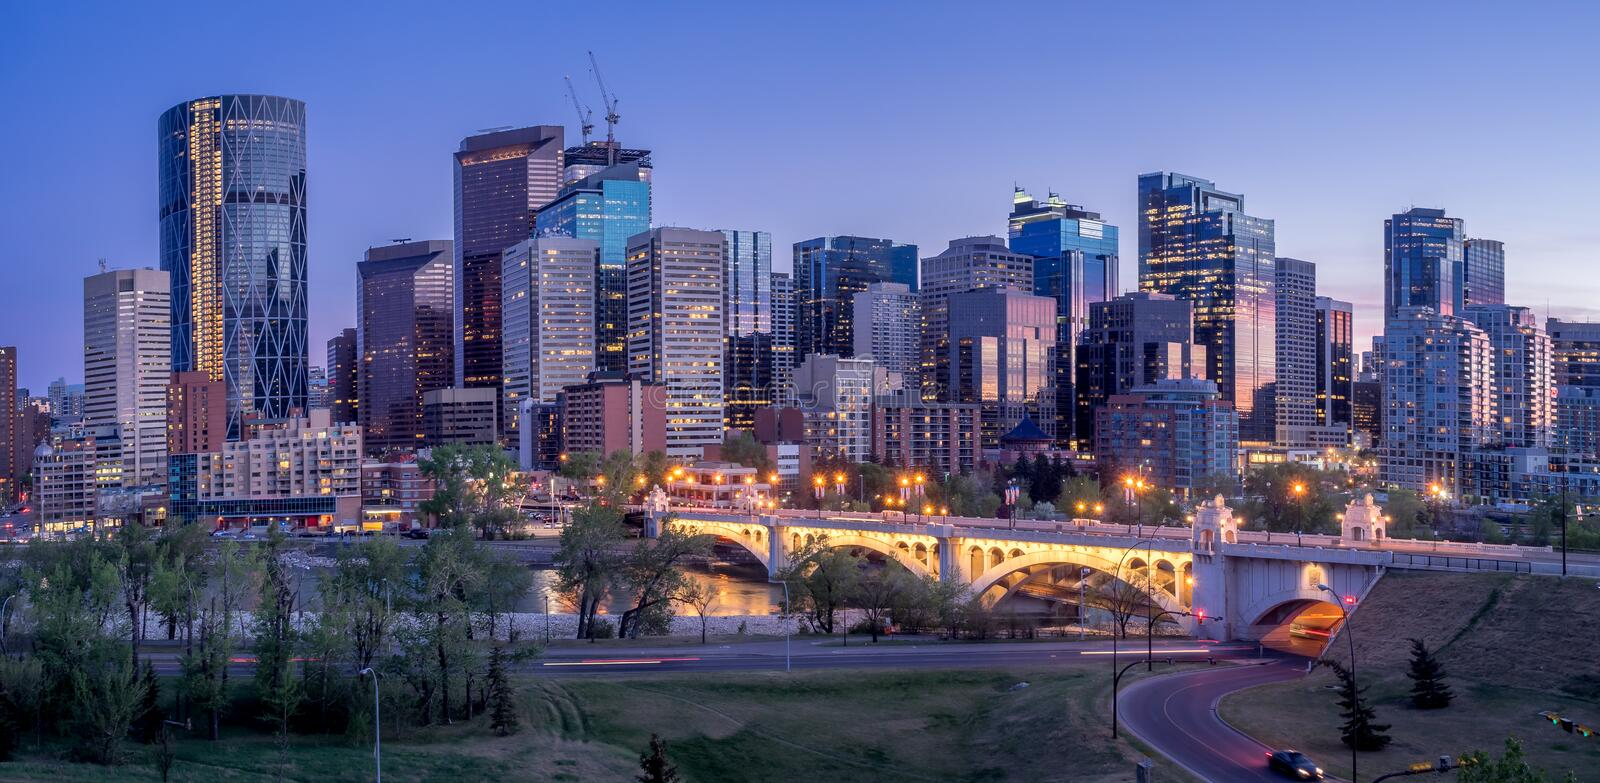 Night cityscape of Calgary, Canada. Buildings in Calgary Canada at night royalty free stock image